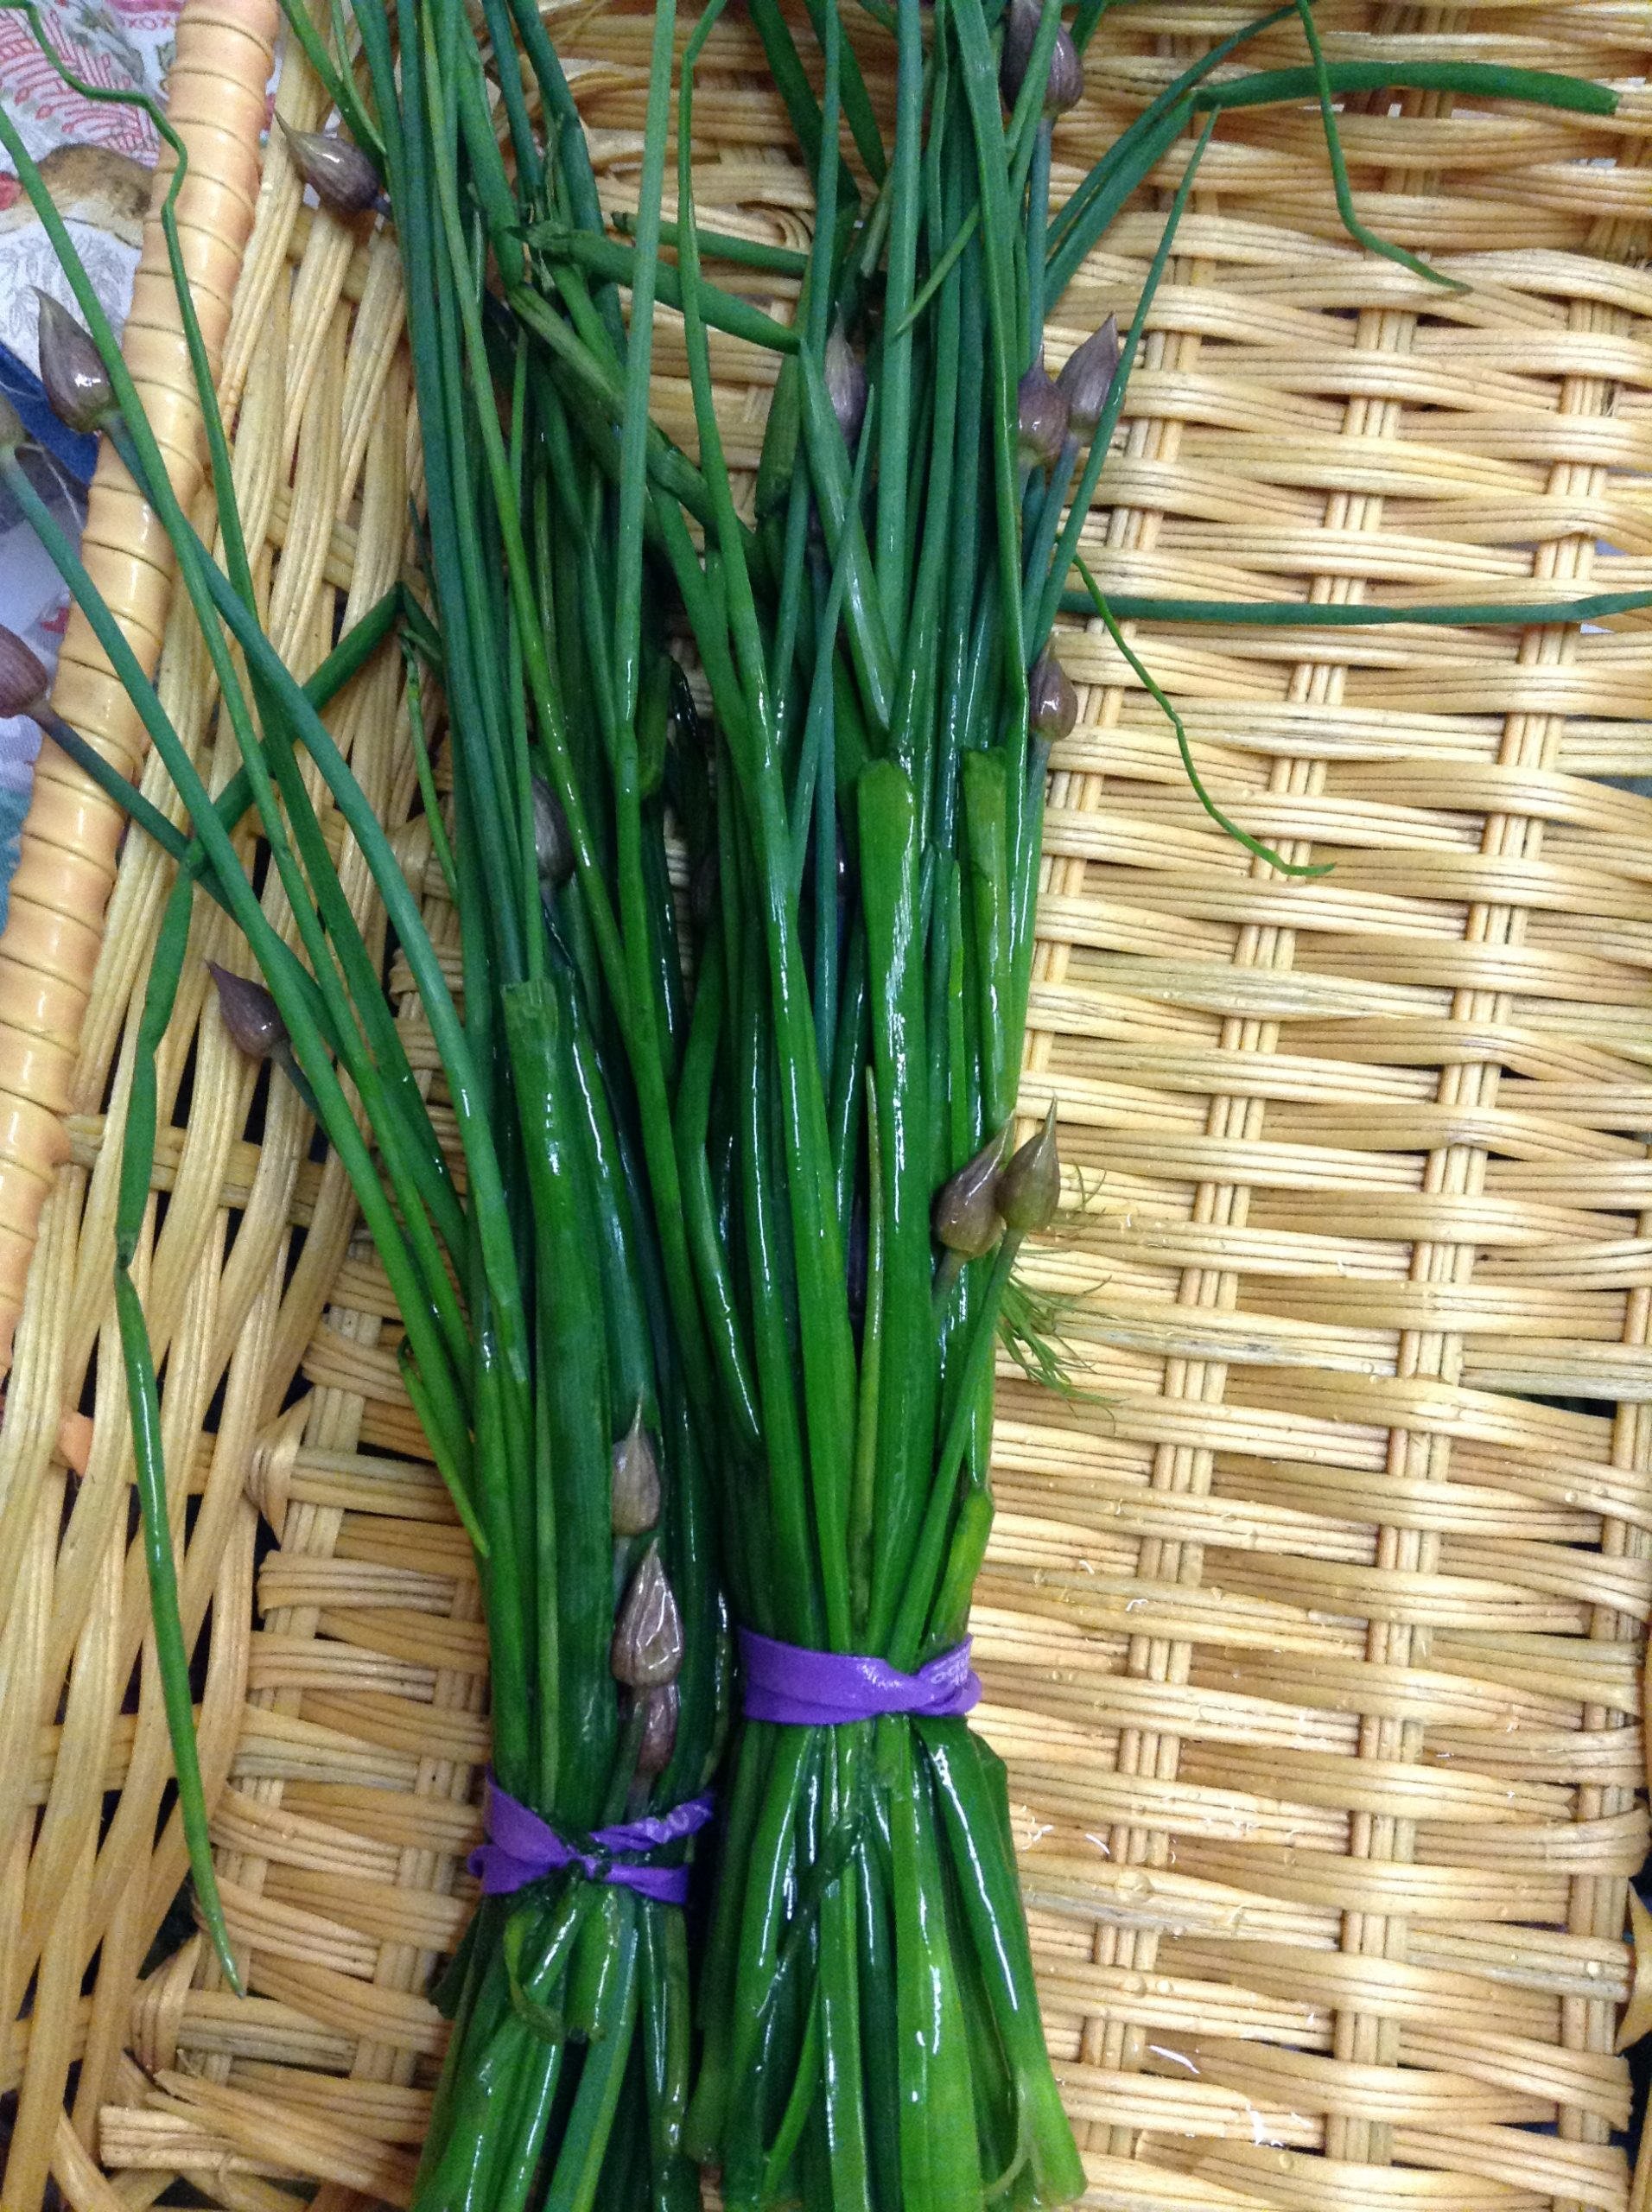 LOCAL Chives, organically-grown